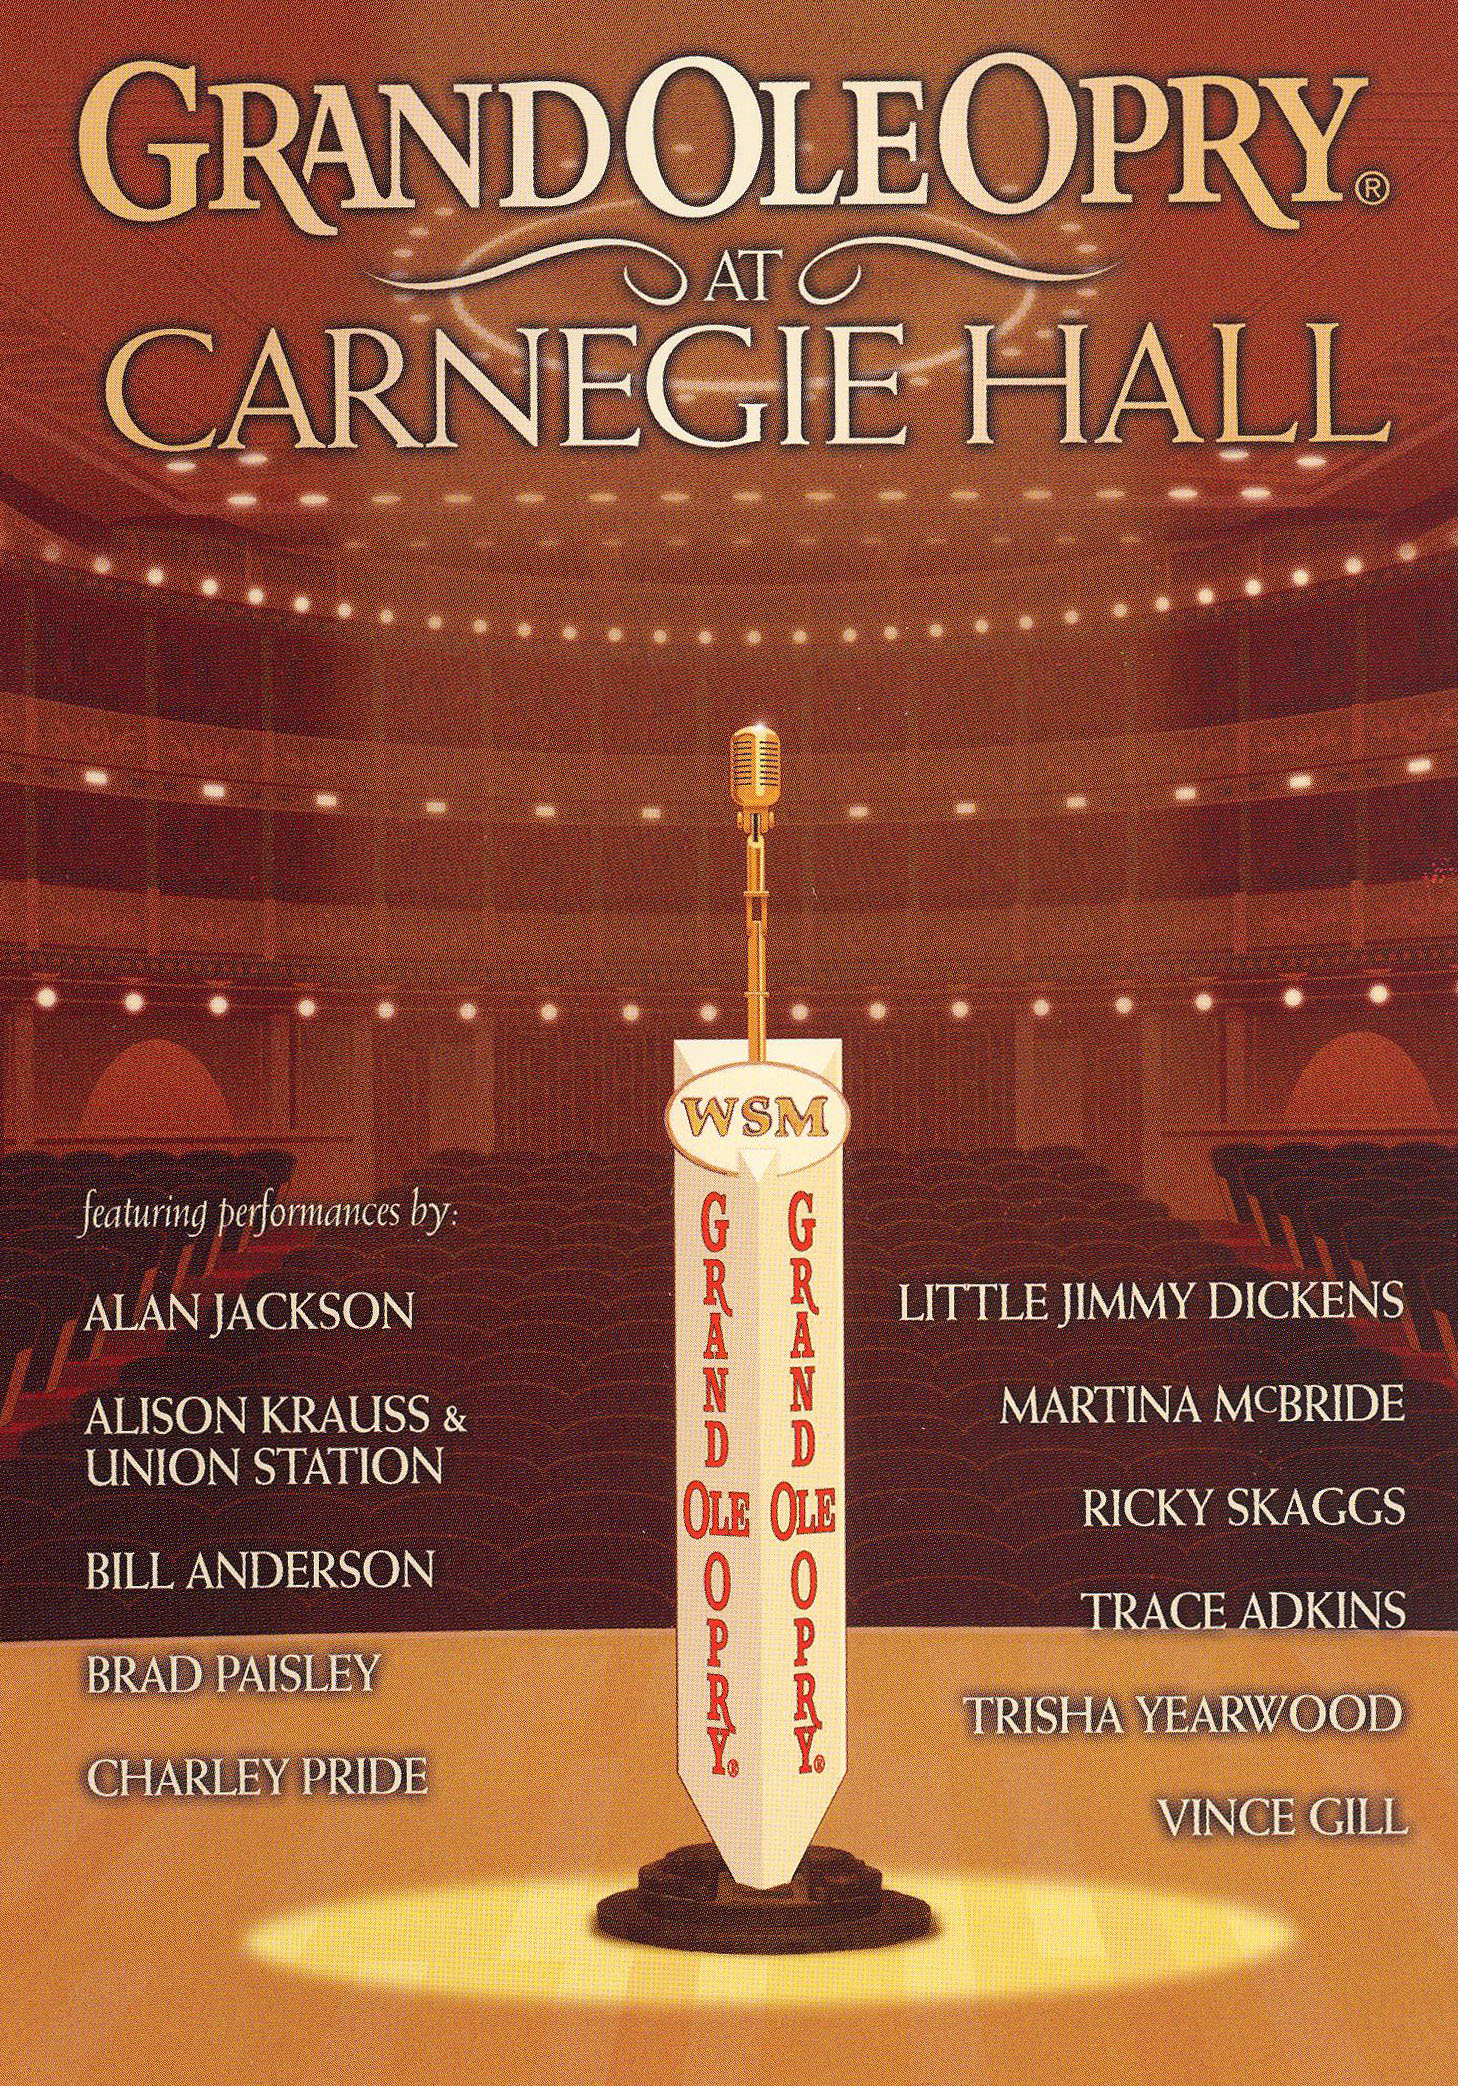 Grand Ole Opry at Carnegie Hall